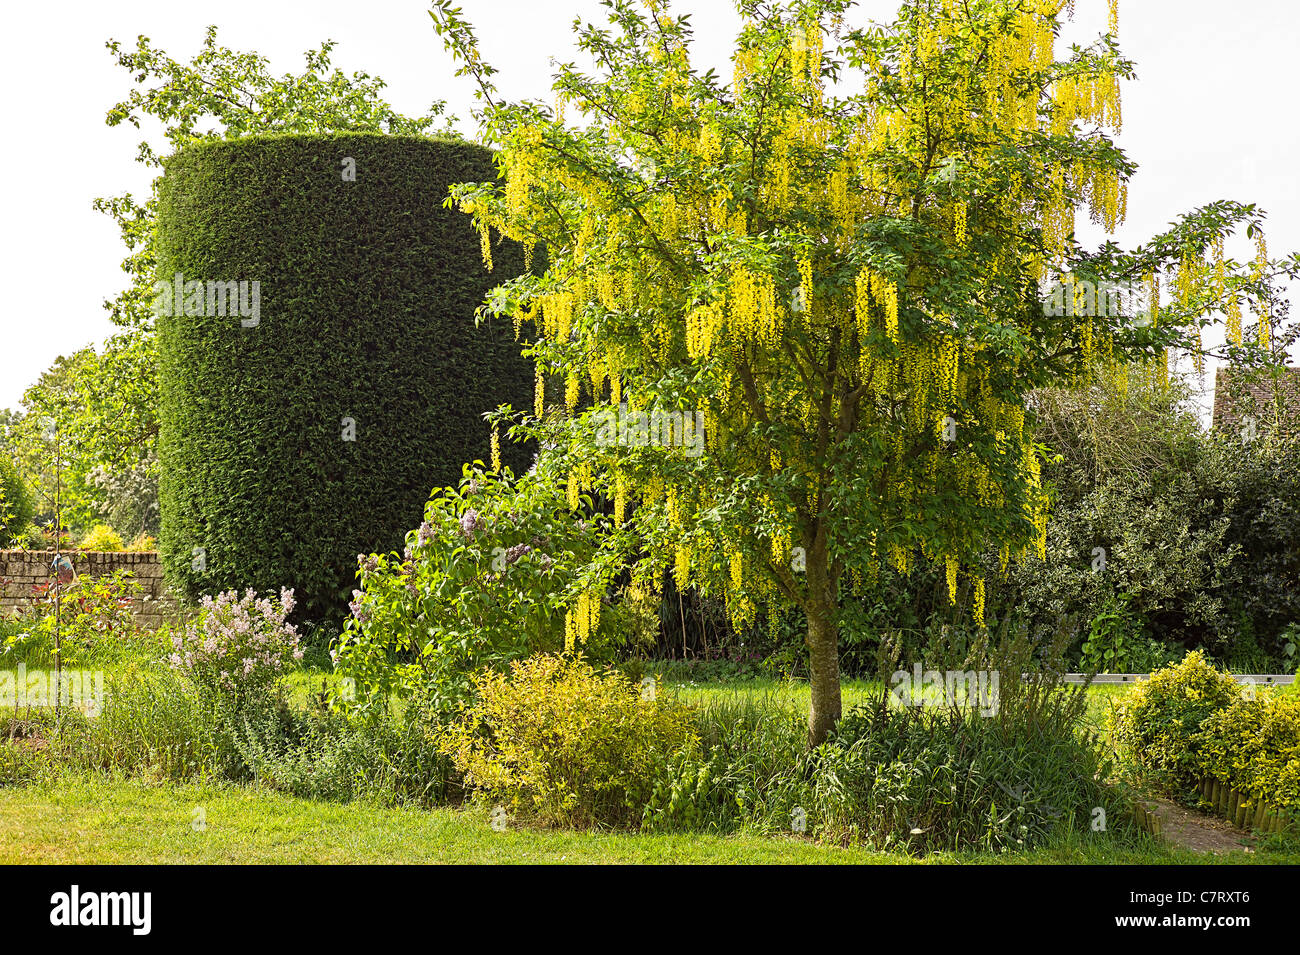 Spring garden with shaped specimen conifer and Laburnum tree in flower in May - Stock Image